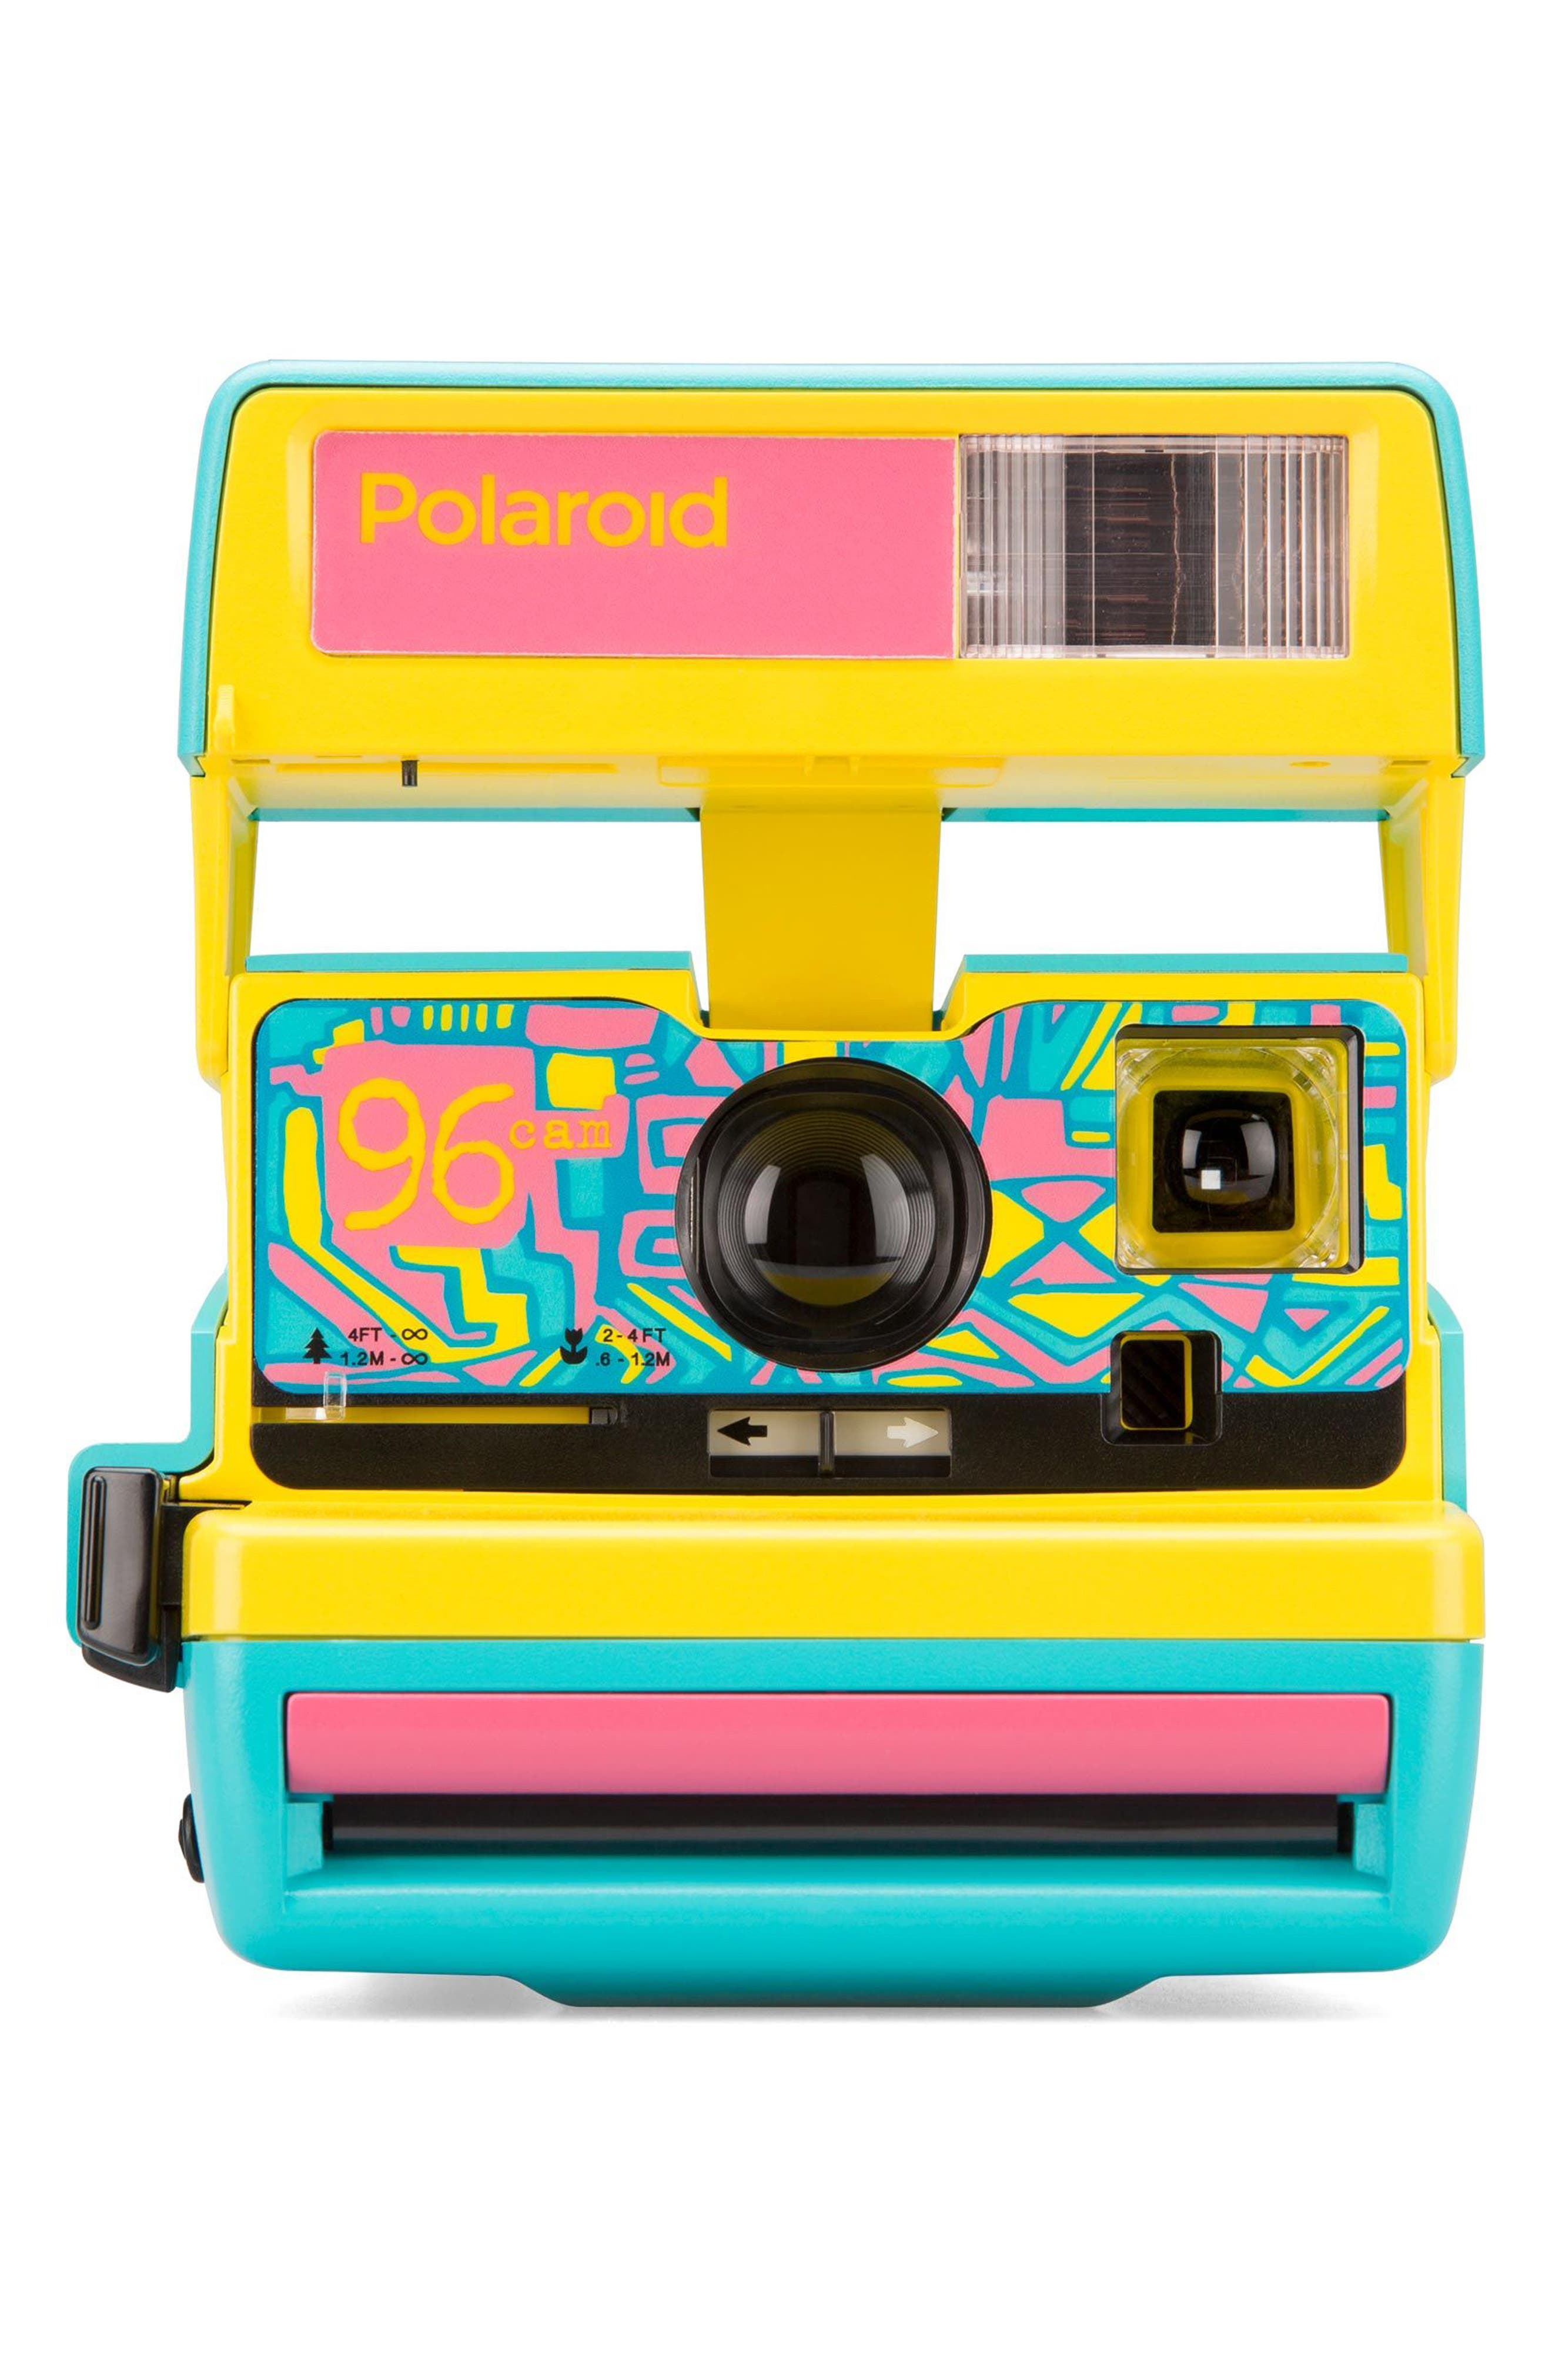 Impossible Project Polaroid 600 96 Cam Instant Camera,                         Main,                         color, BLUE